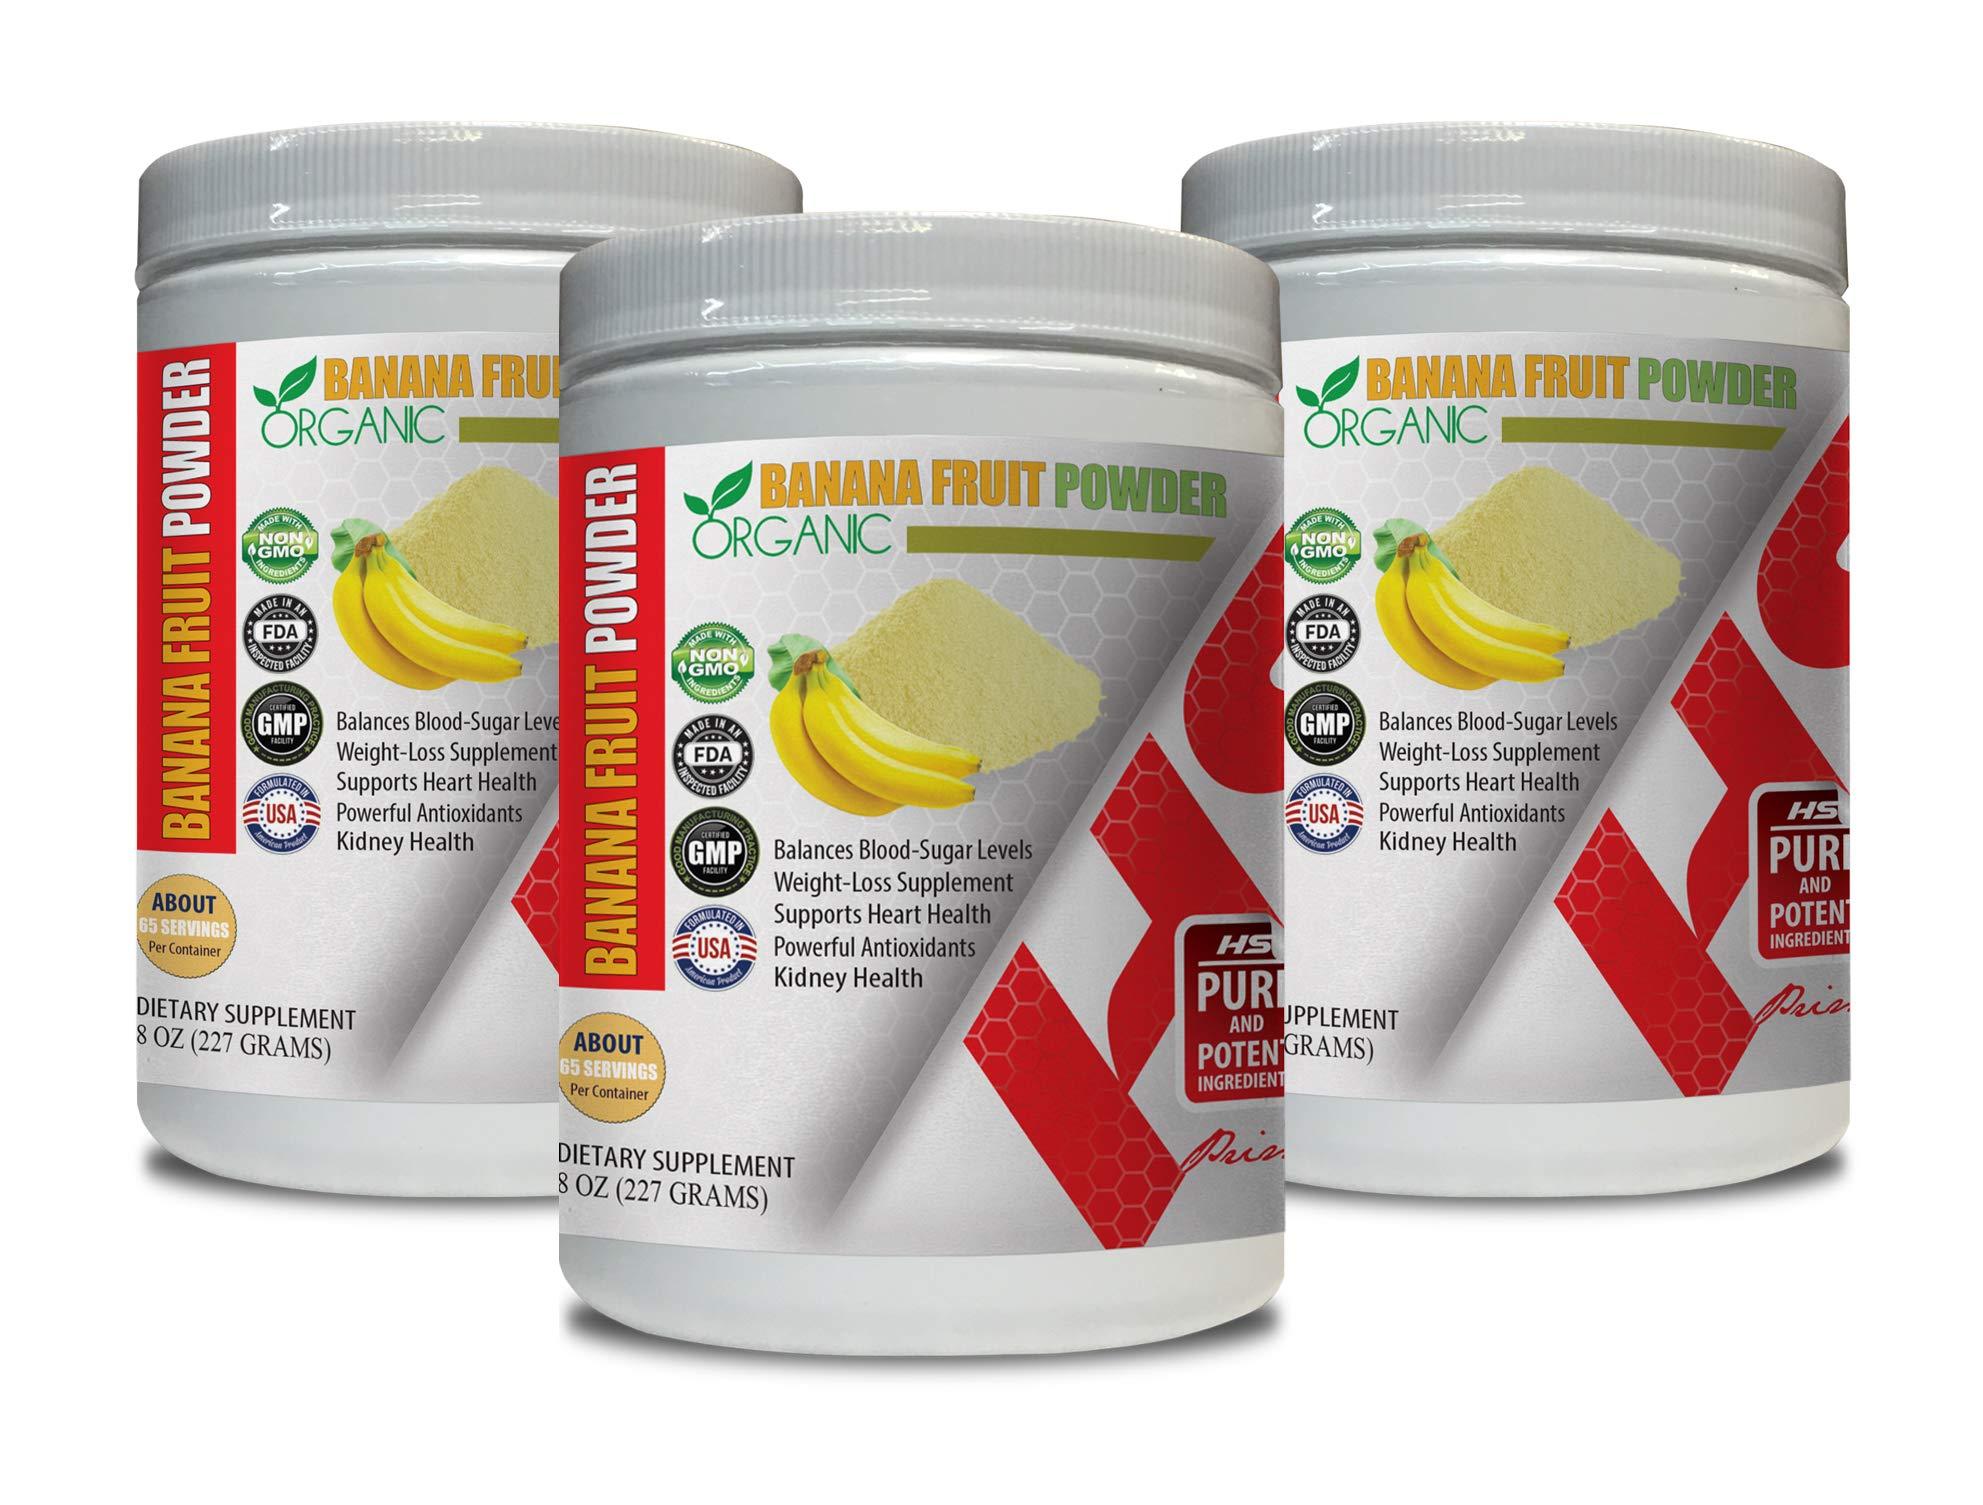 Blood Pressure Supplements Best Seller - Banana Fruit Organic Powder - Digestive Supplements - 3 Cans 24 OZ (195 Servings)